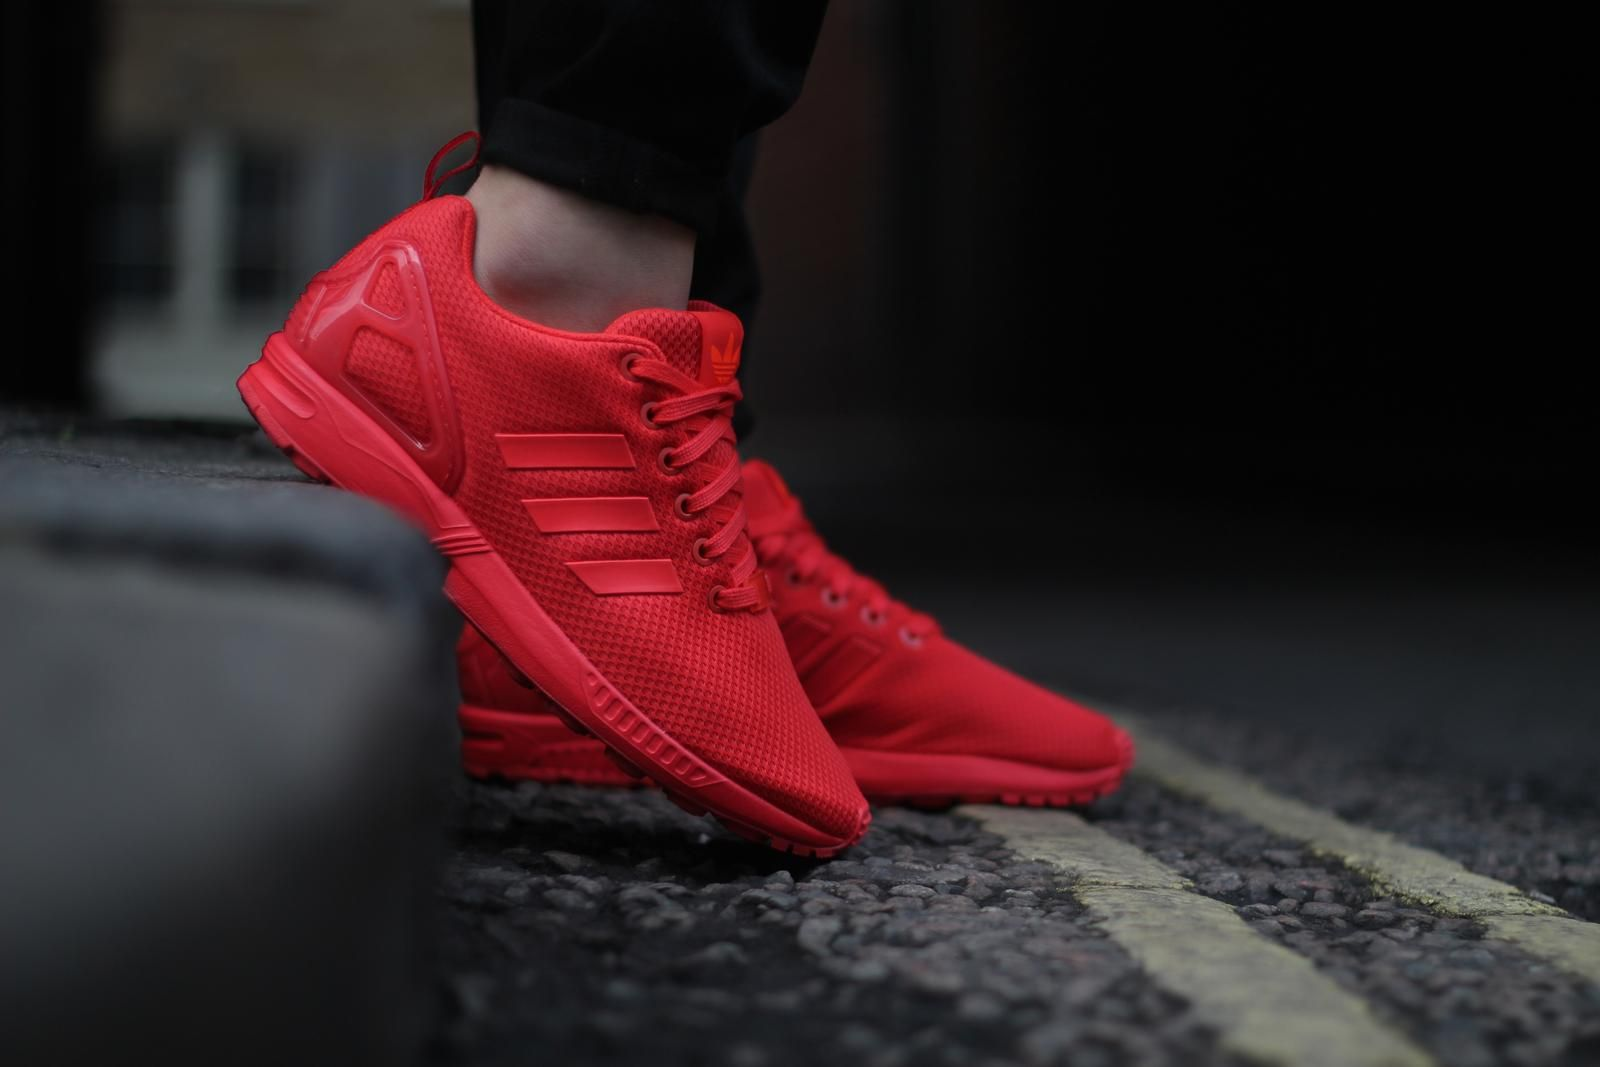 Adidas Zx Flux Red October